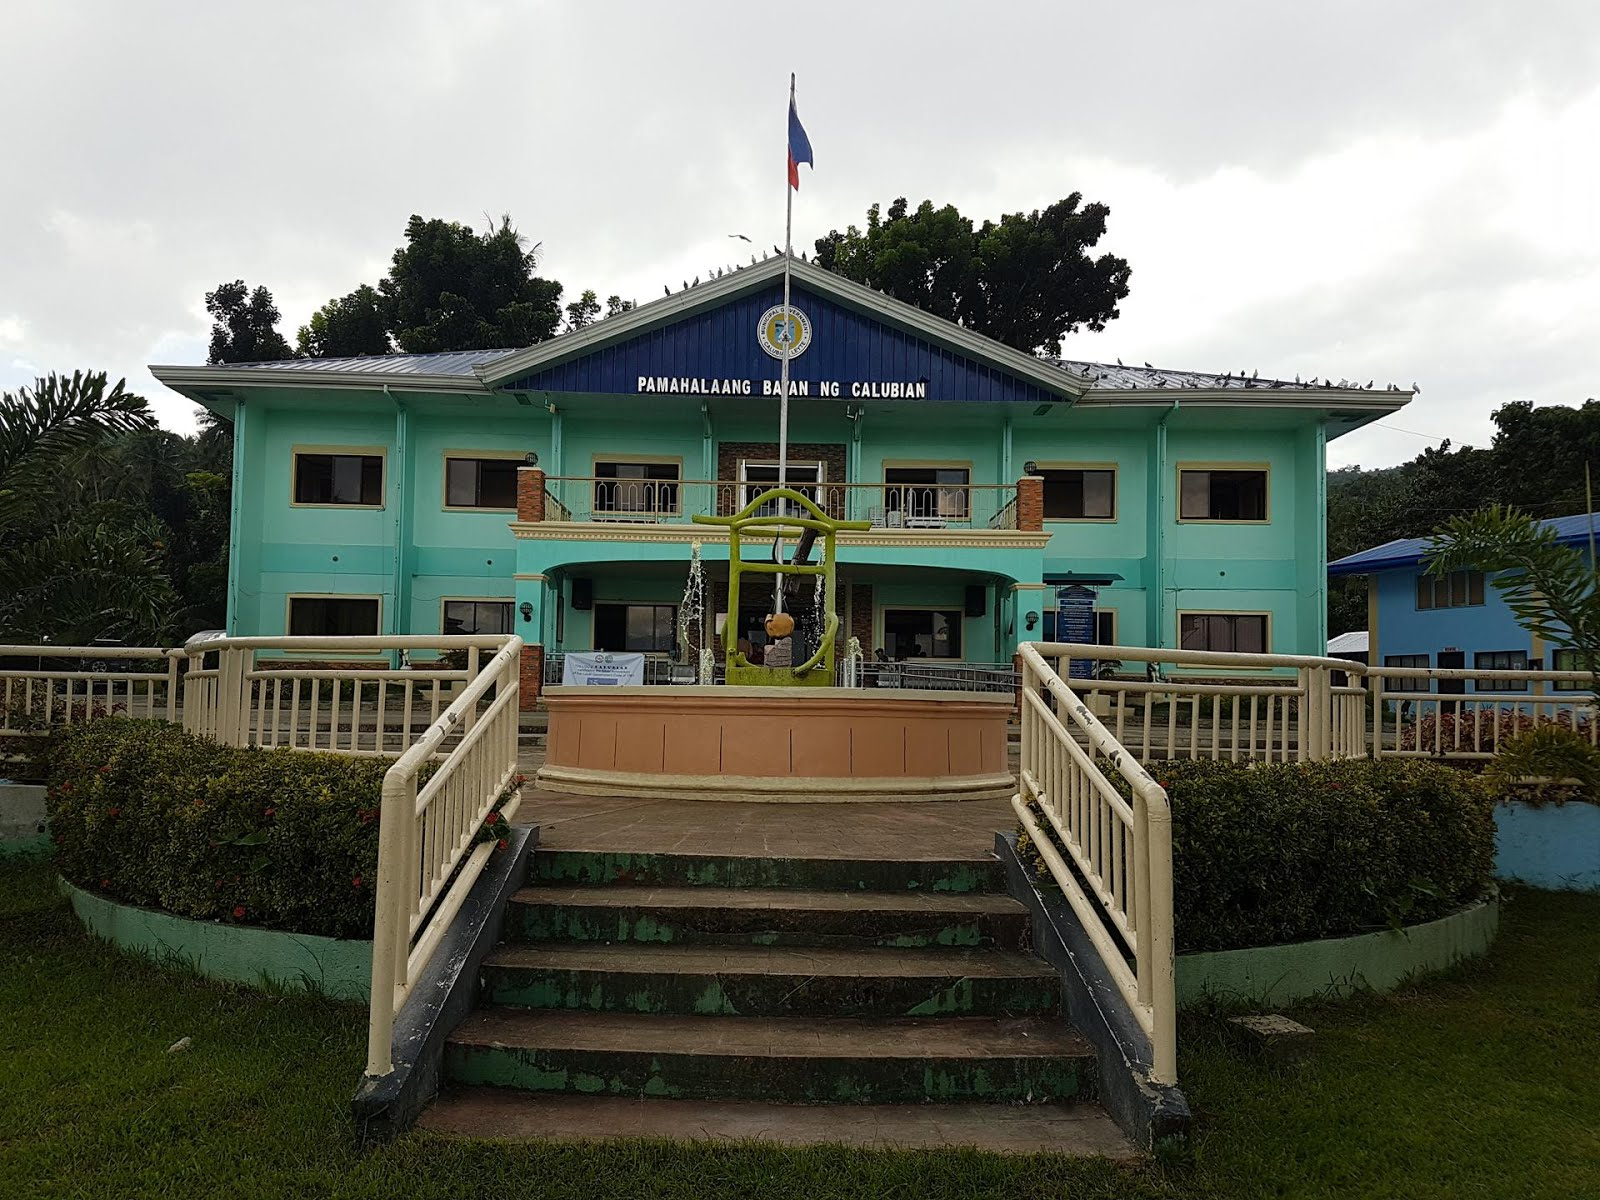 THE NEWLY UPGRADED MUNICIPAL HALL